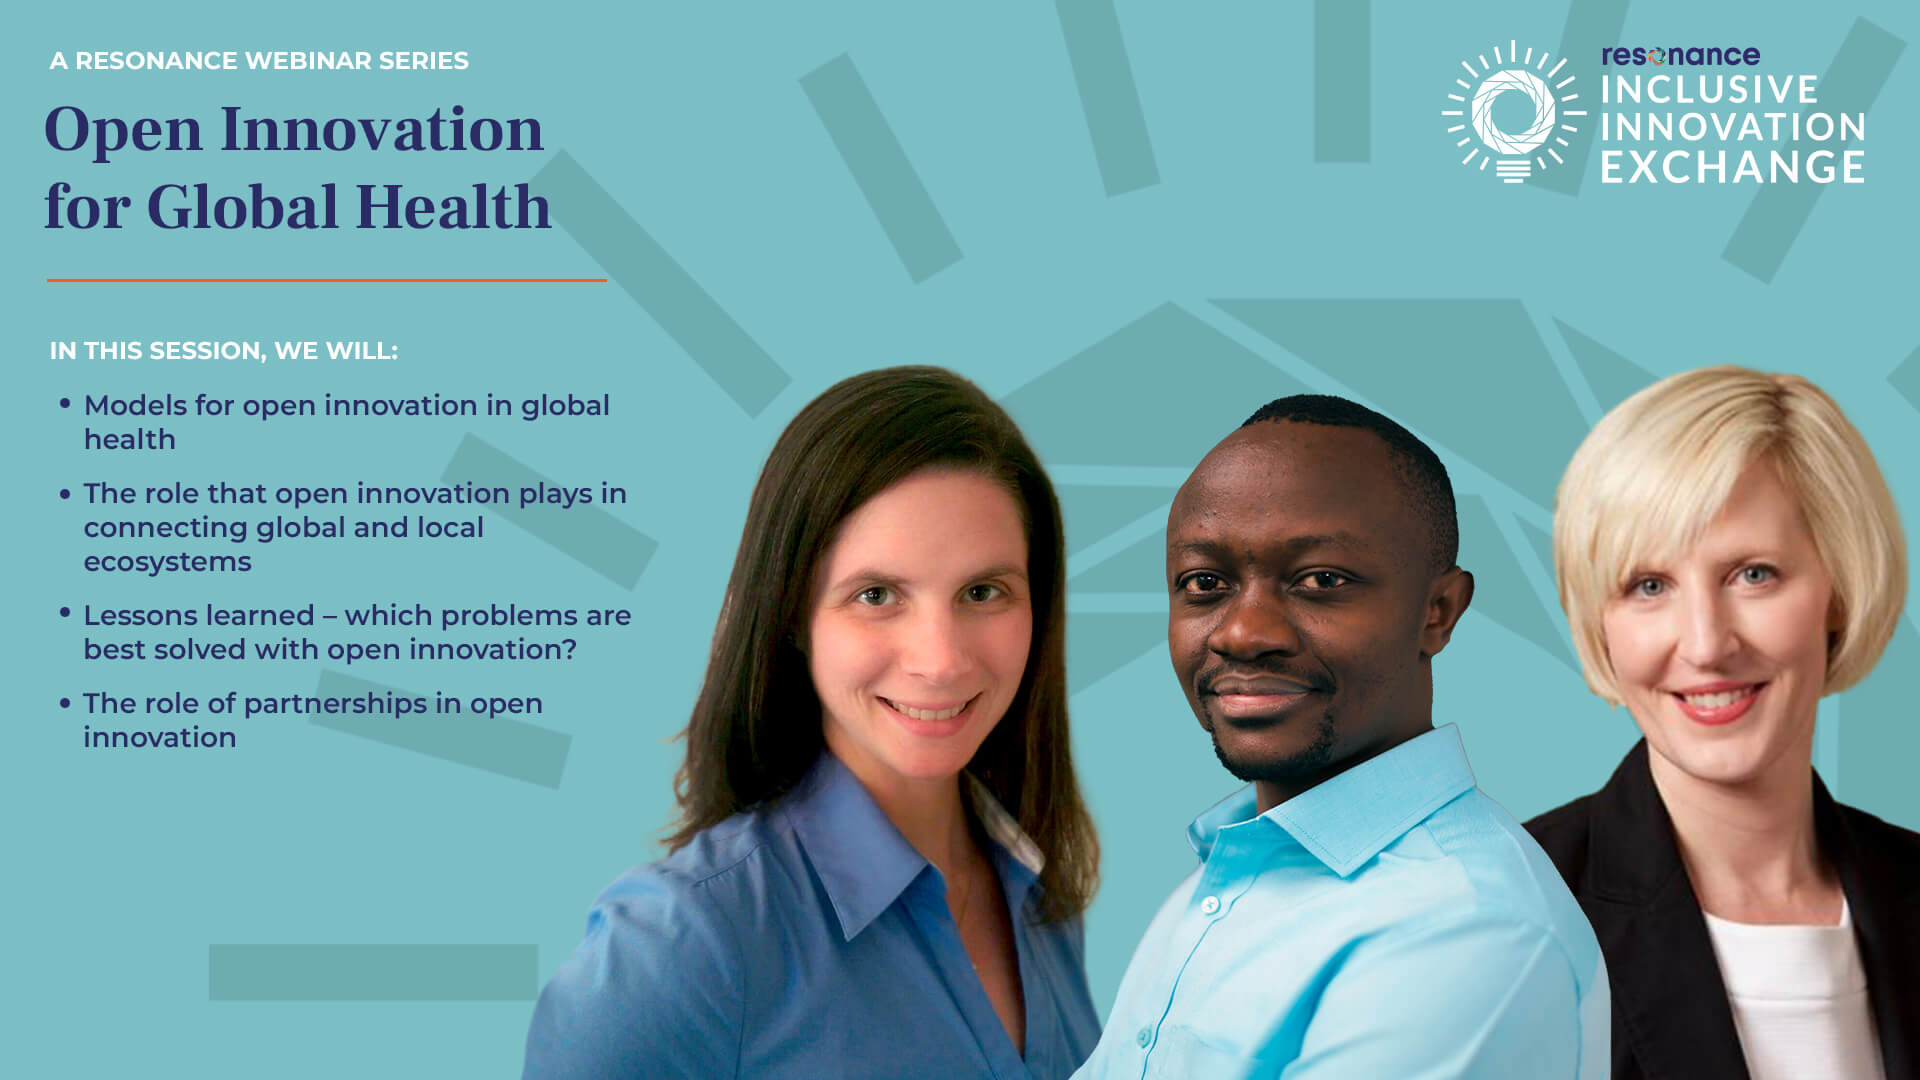 IIE 8 - Open Innovation for Global Health